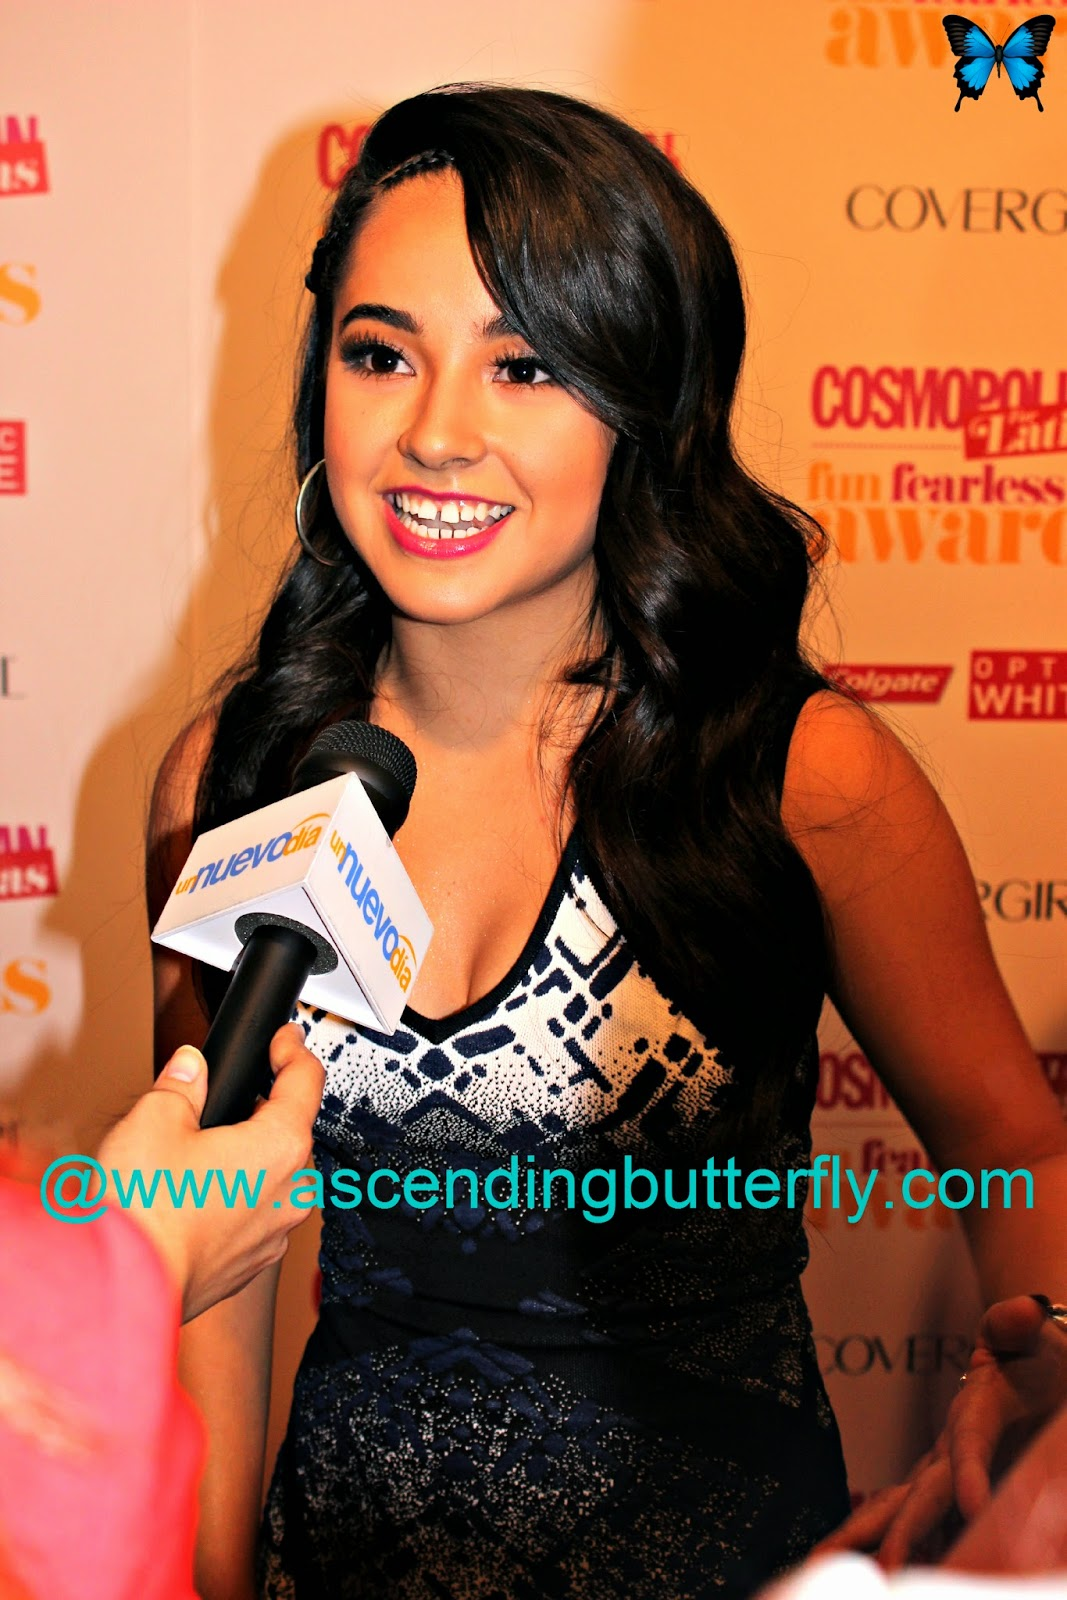 Singer Becky G at Cosmopolitan for Latinas Fun Fearless Awards 2014 in New York City being interviewed by Nuevo Dia